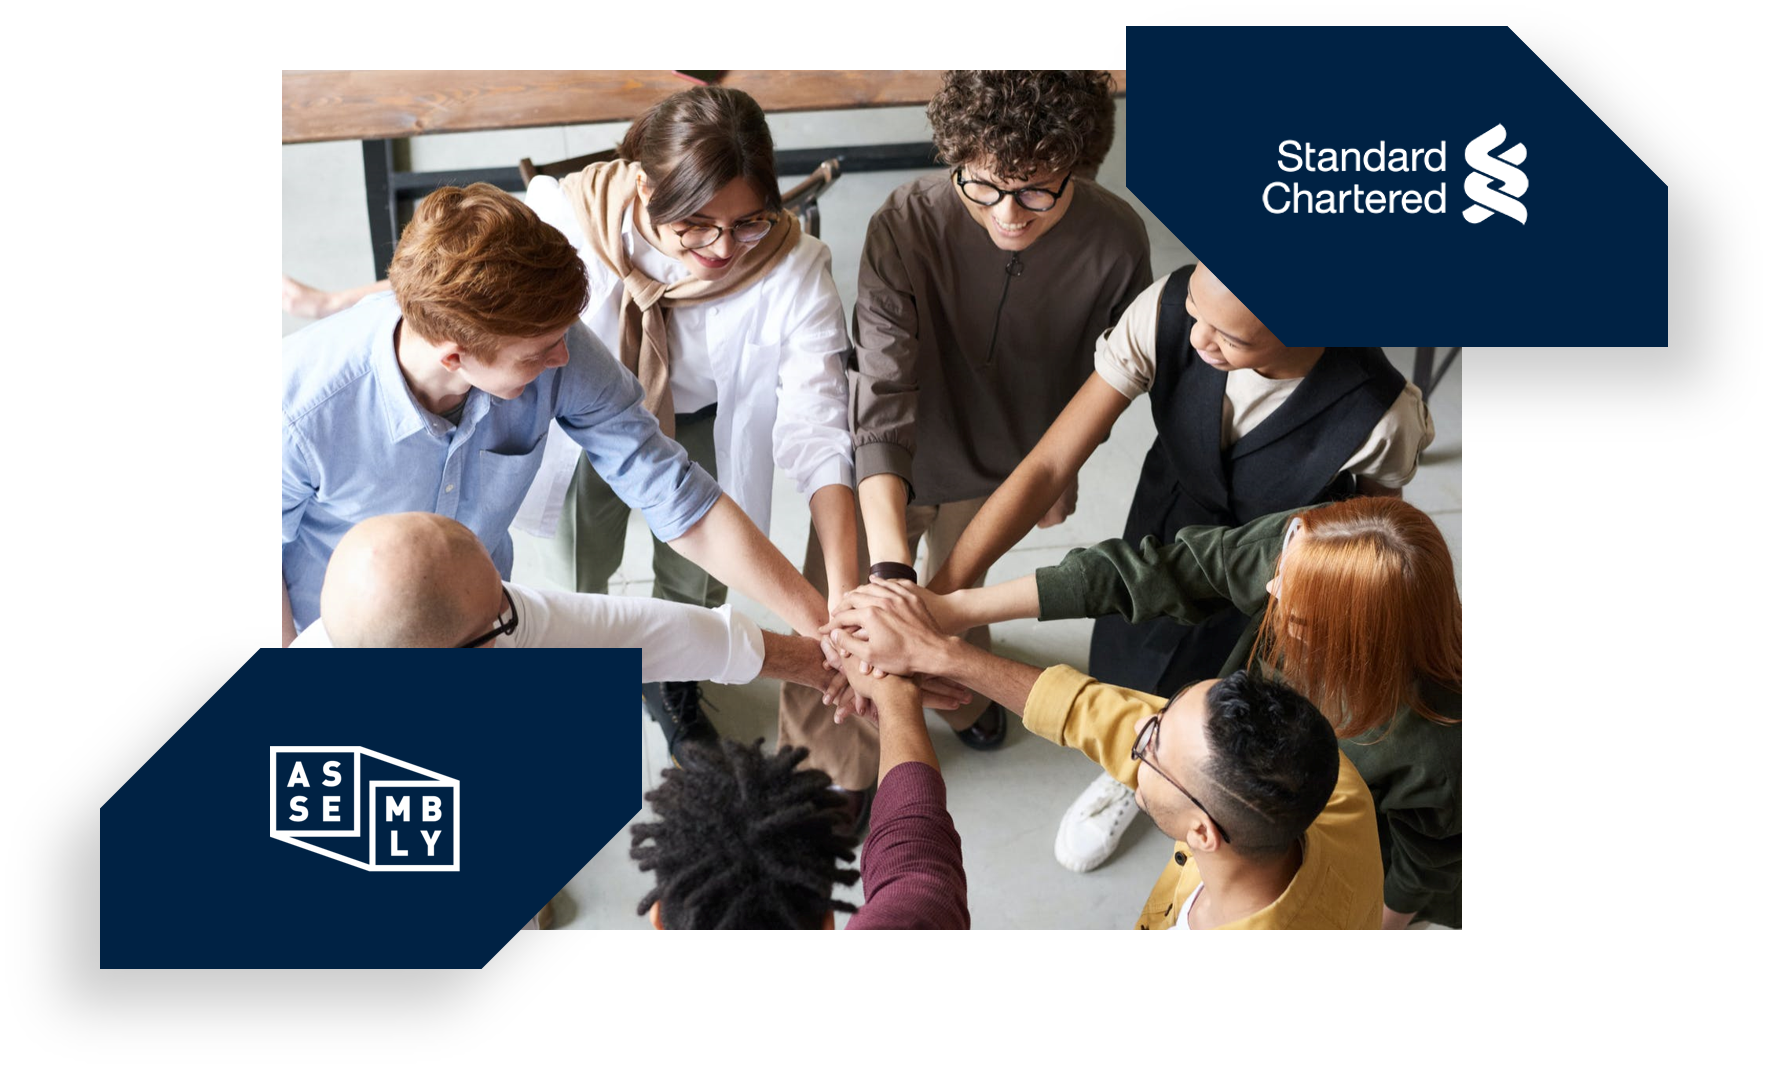 Standard Chartered and Assembly Payments partners together to form a joint venture